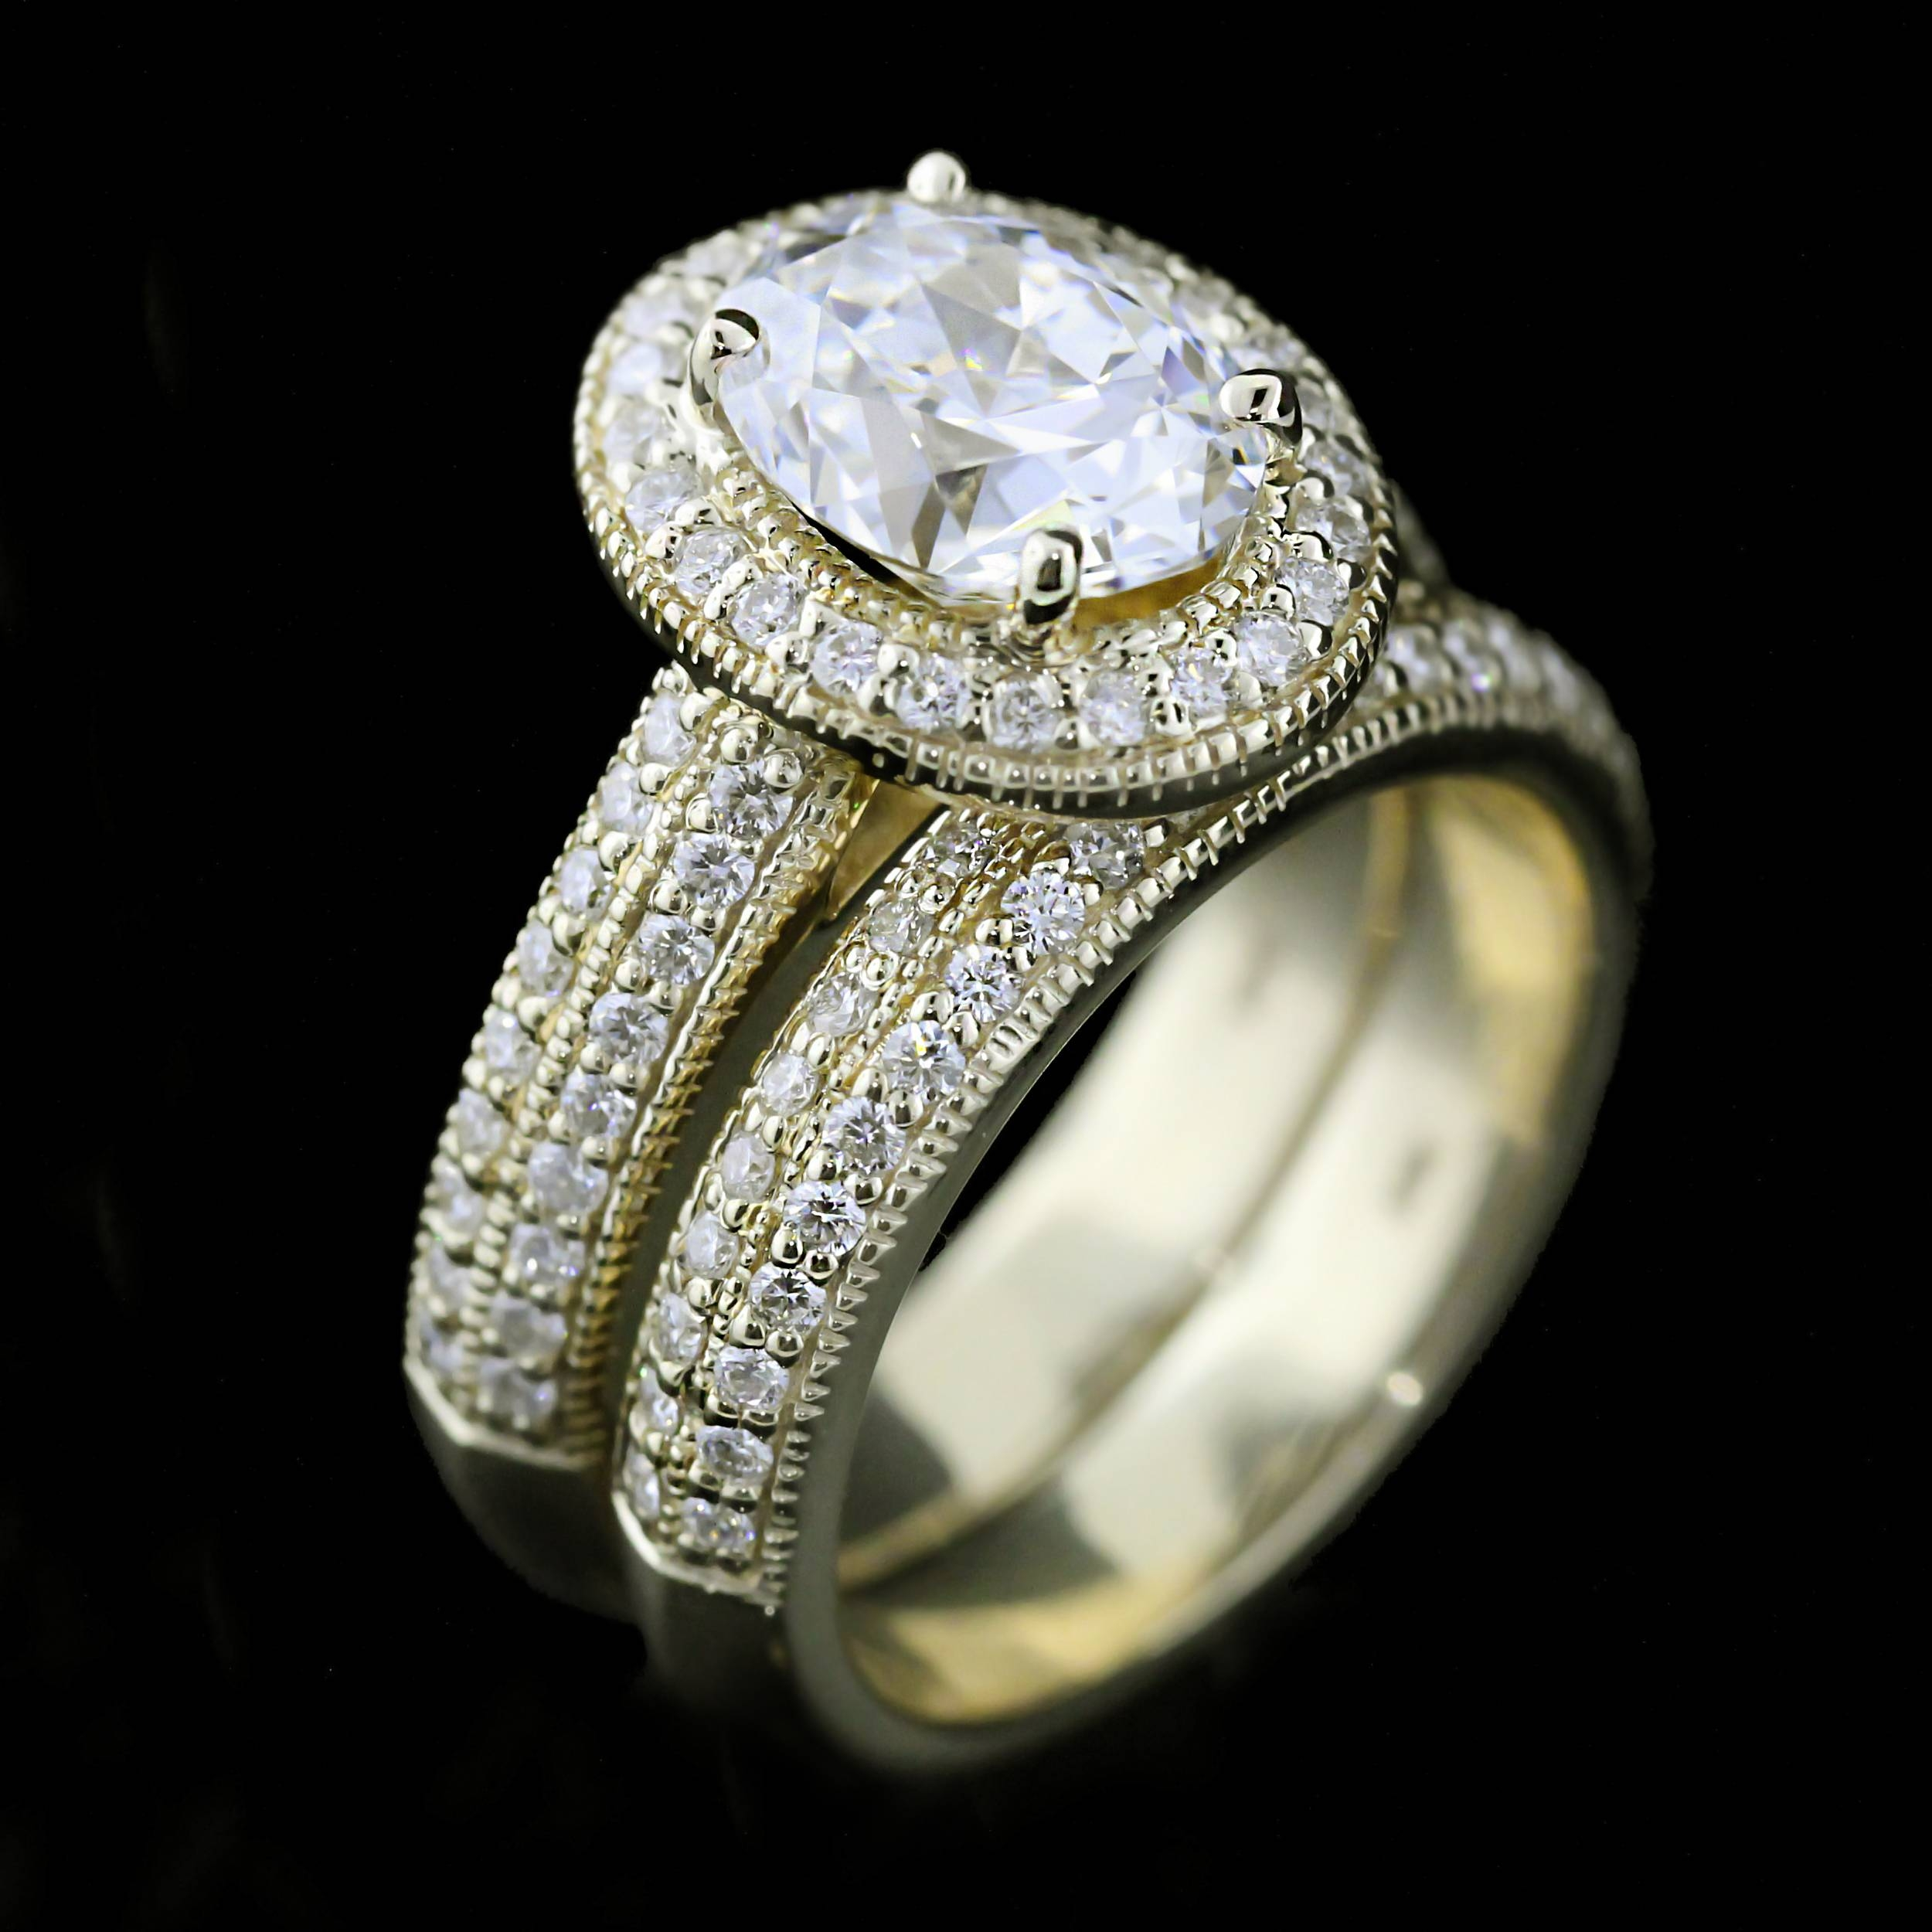 concept made diamond white photo best gold engagement rings fabulous size man affordable wedding of full